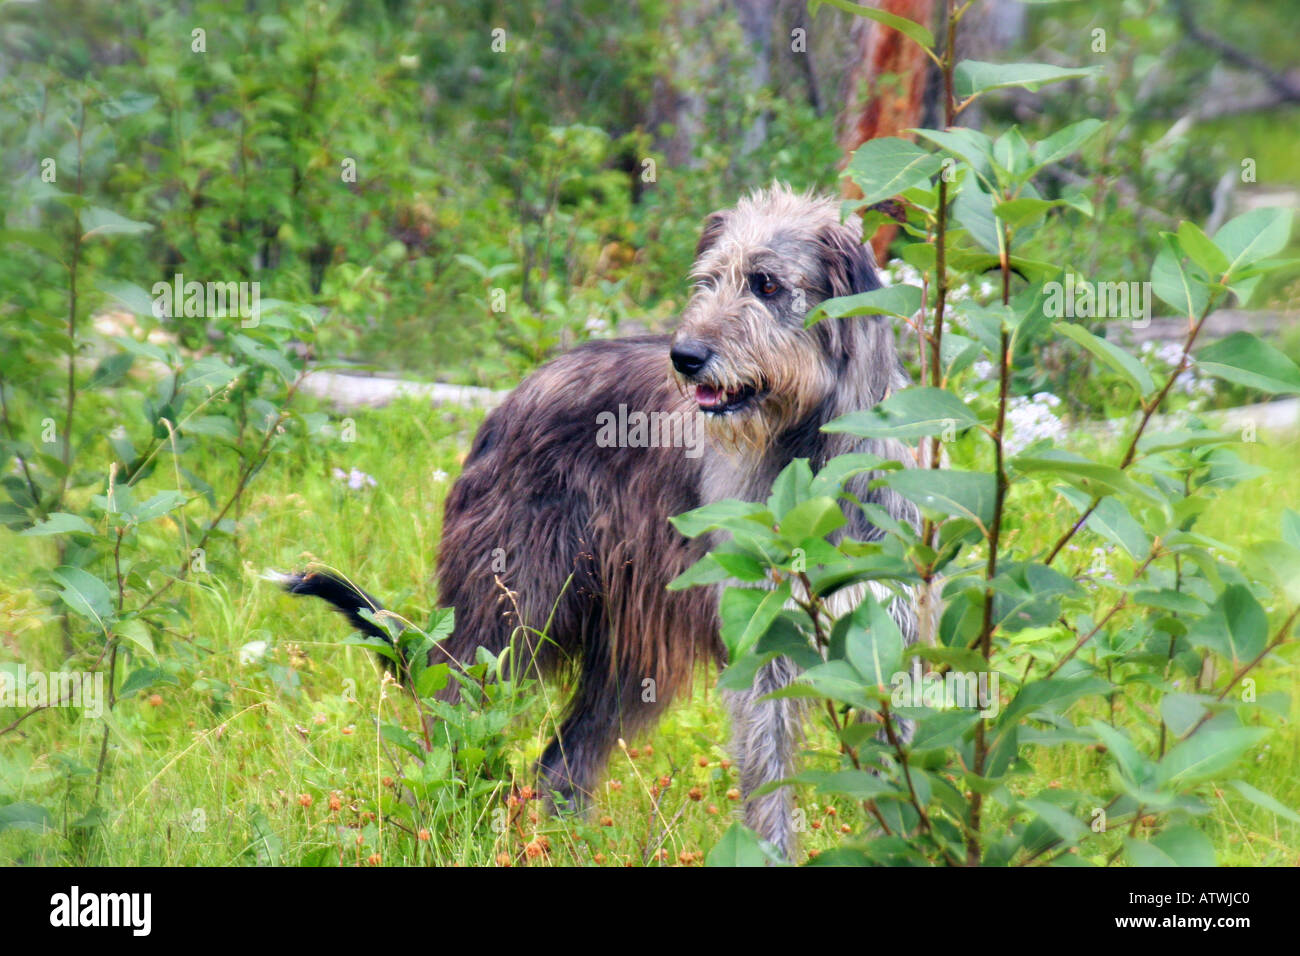 Irish Wolfhound - Stock Image